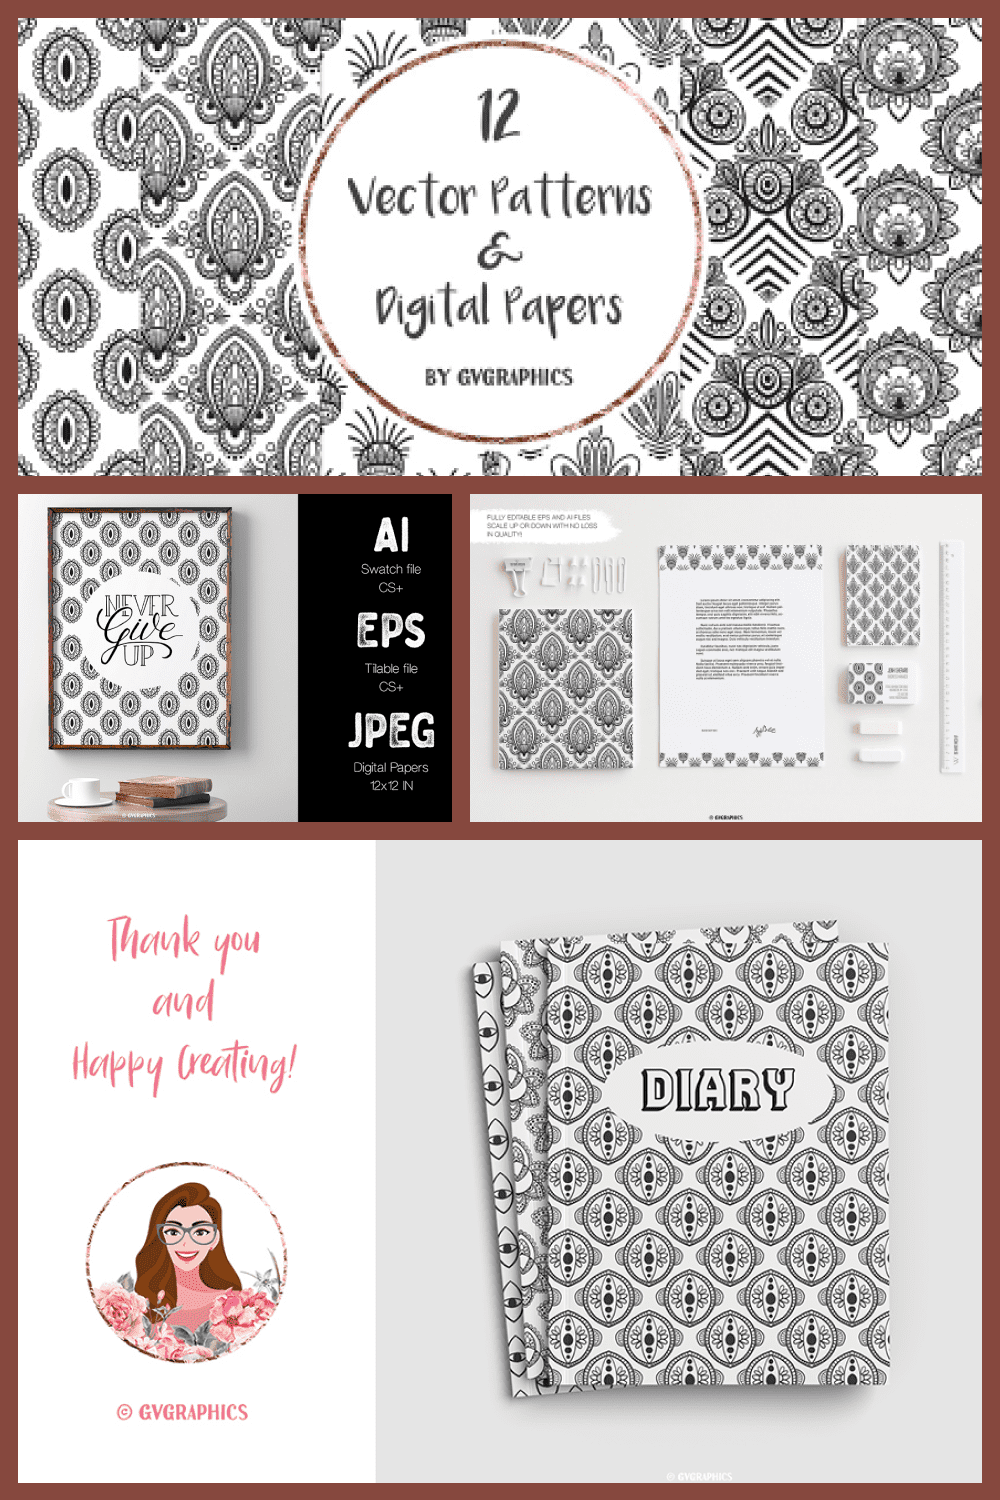 Hand Drawn Black and White Vector Patterns and Digital Papers - MasterBundles - Pinterest Collage Image.